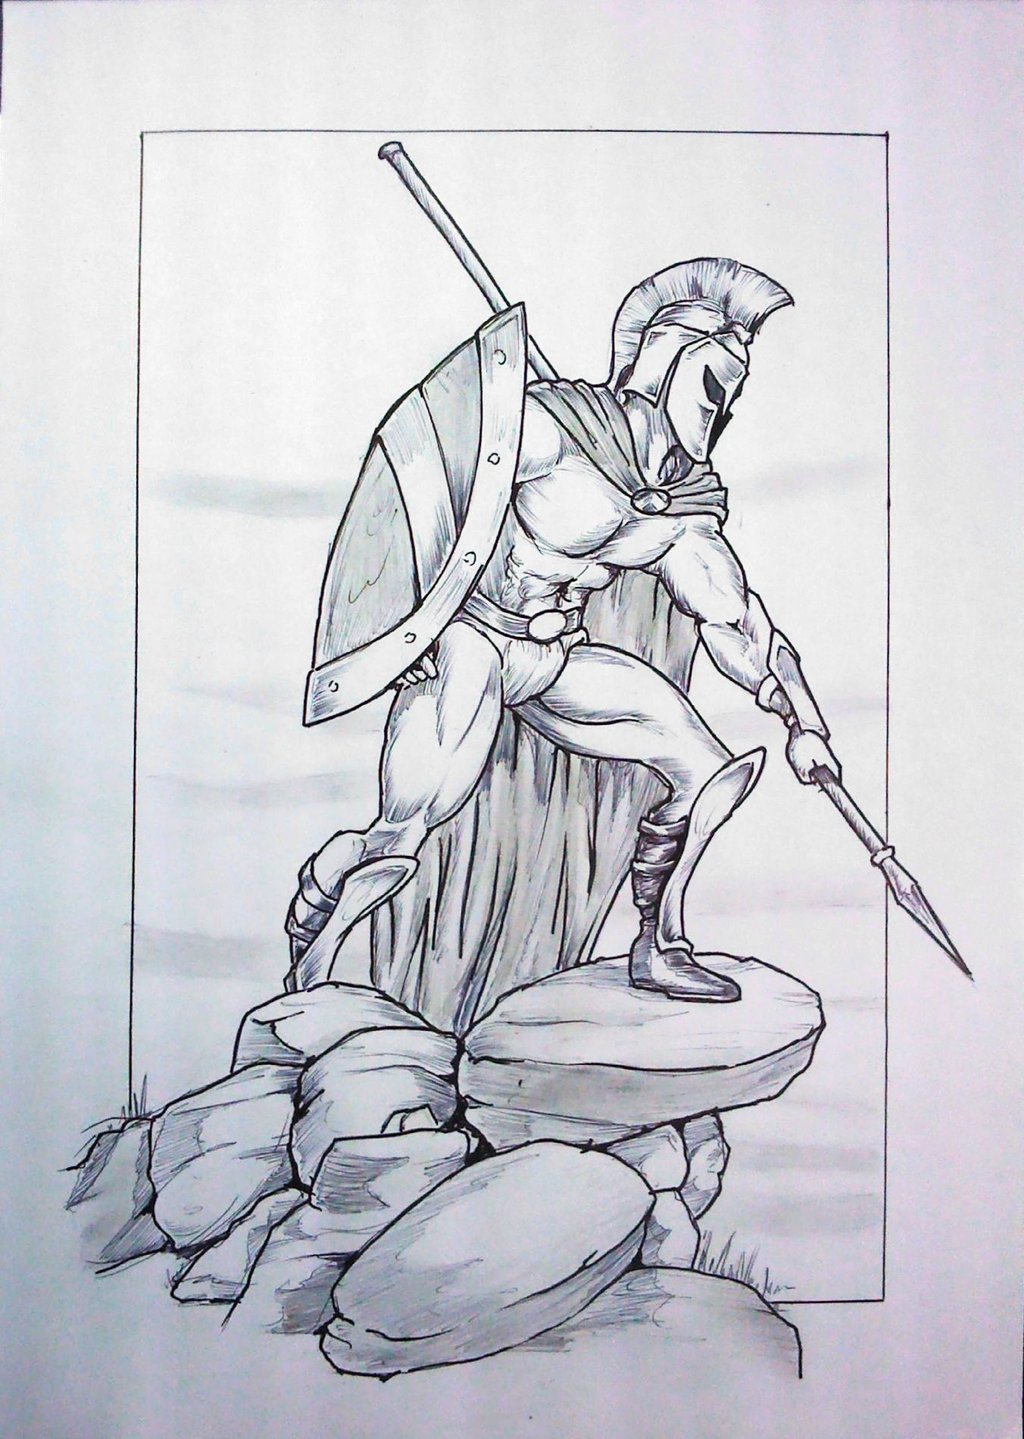 Drawn warrior sparta 03 by skintales5 warrior 03